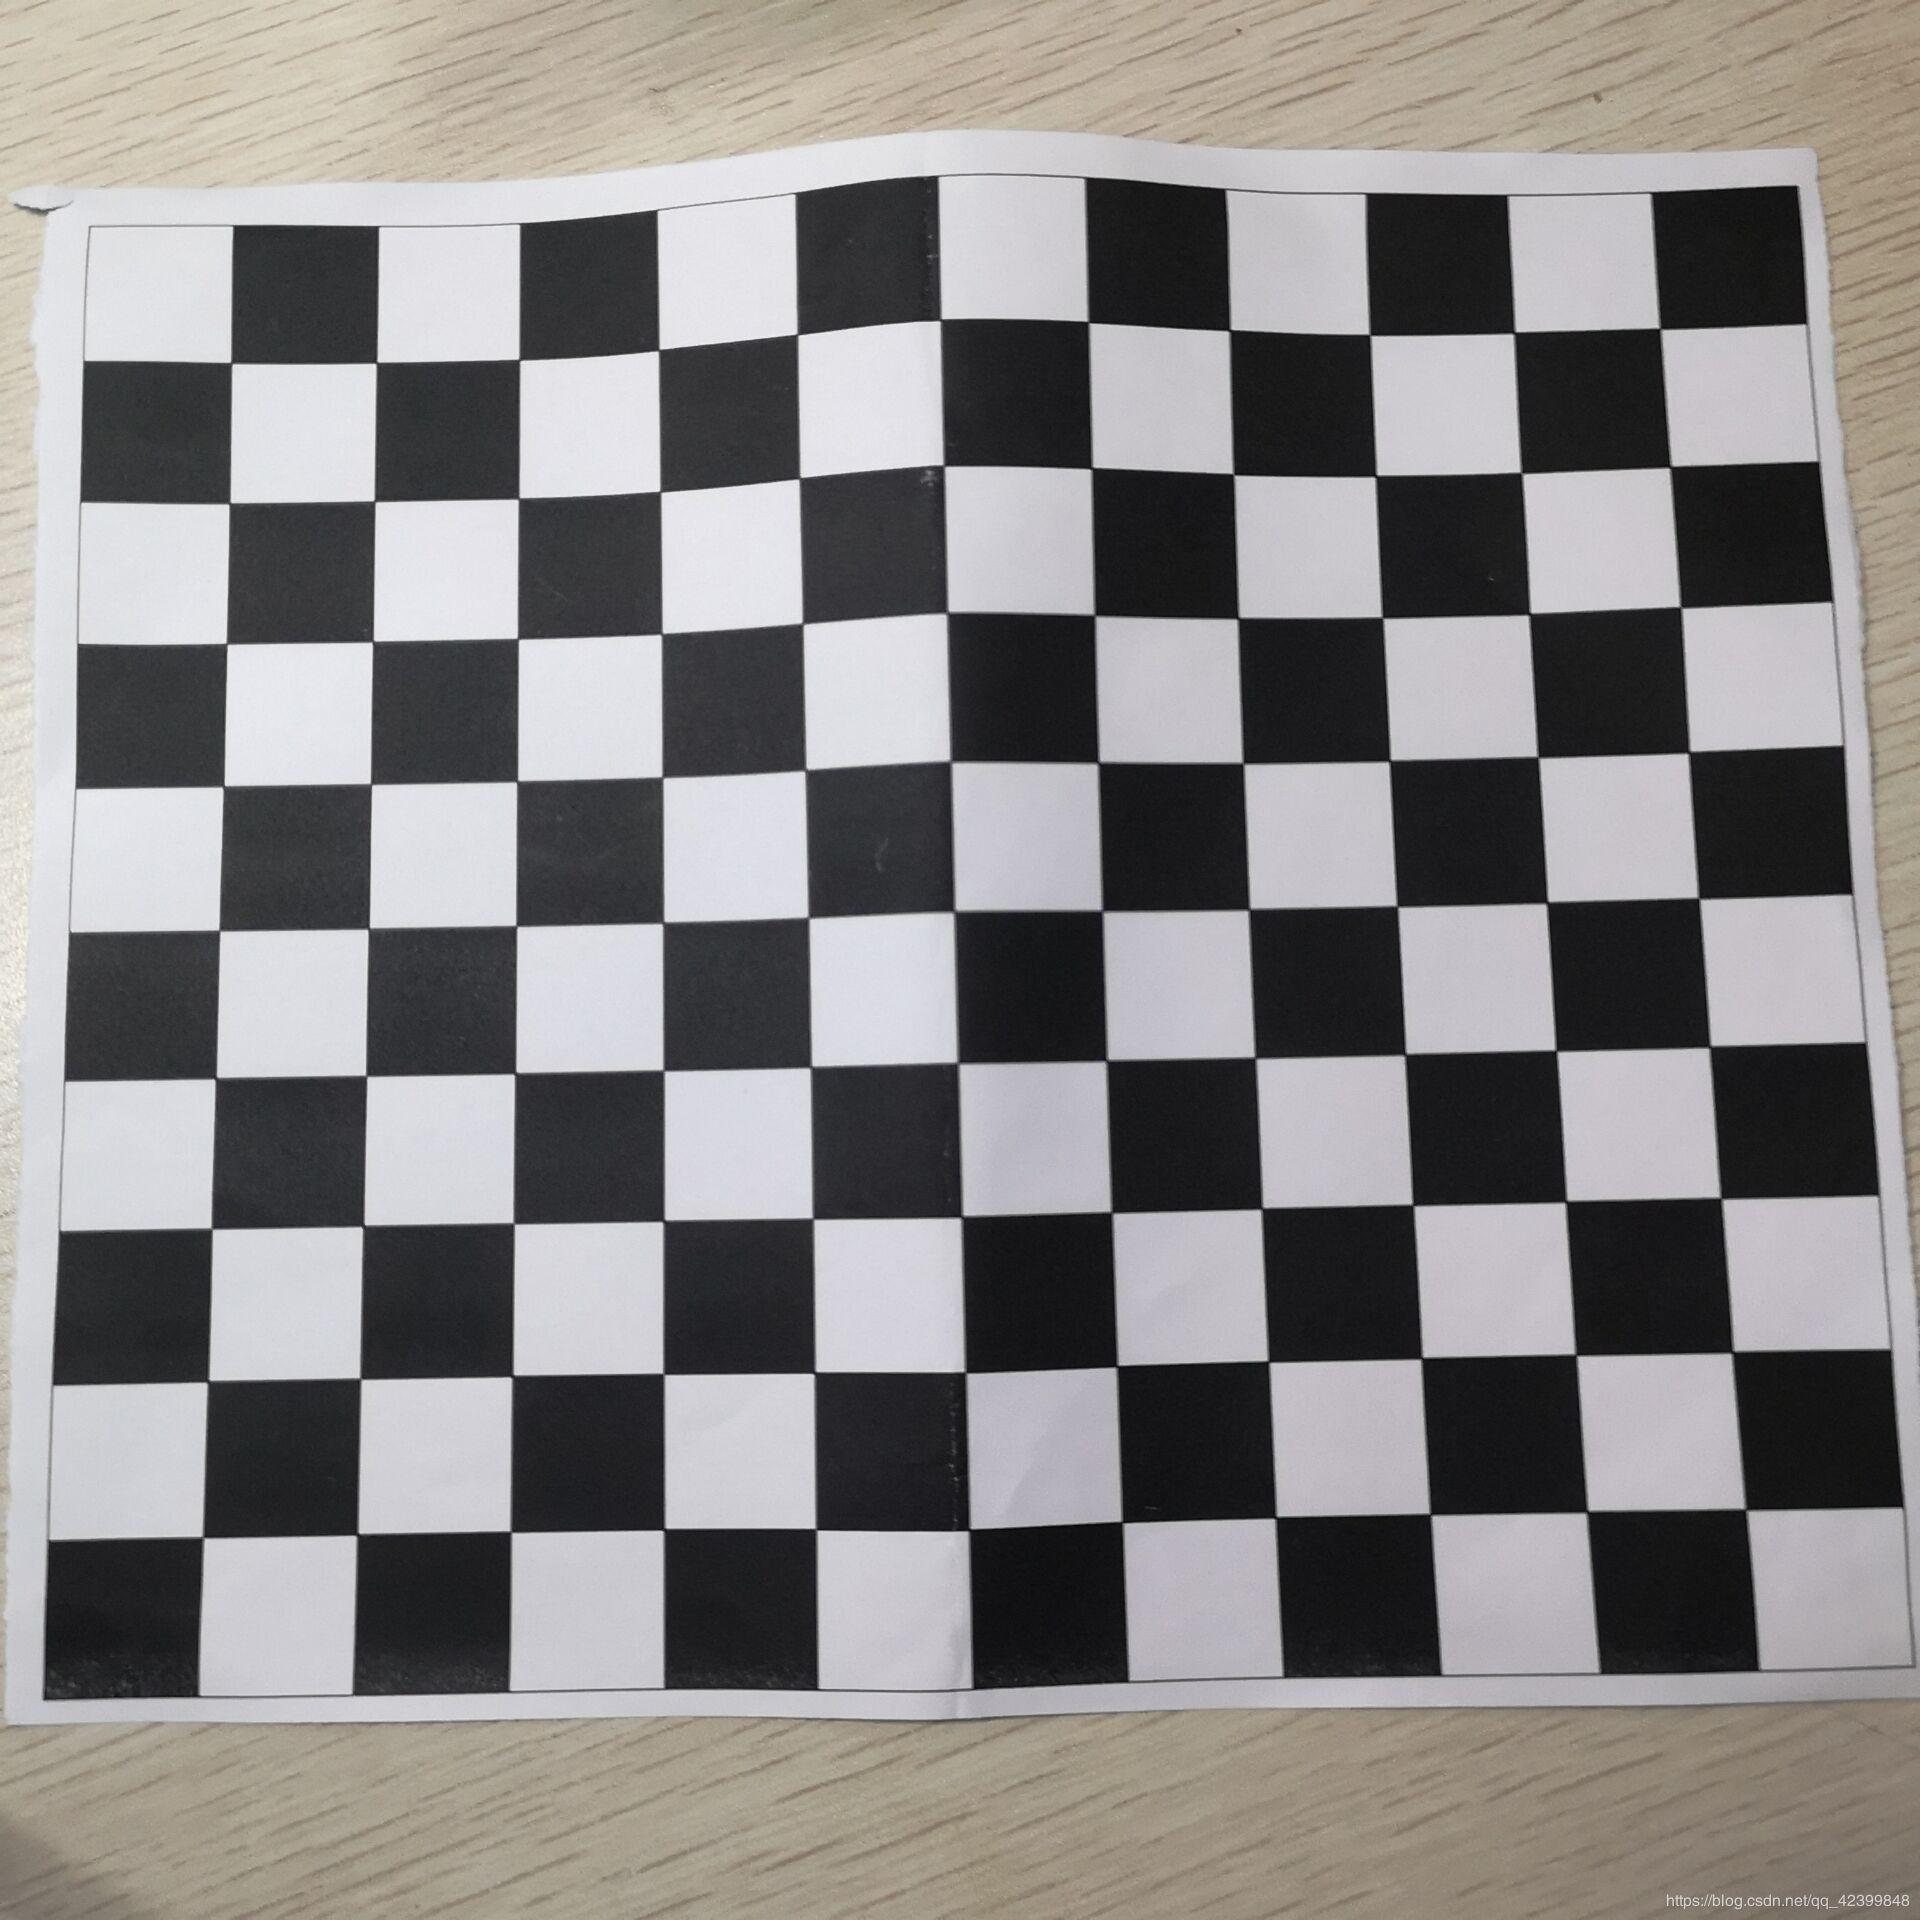 Camera Calibration Checkerboard Size